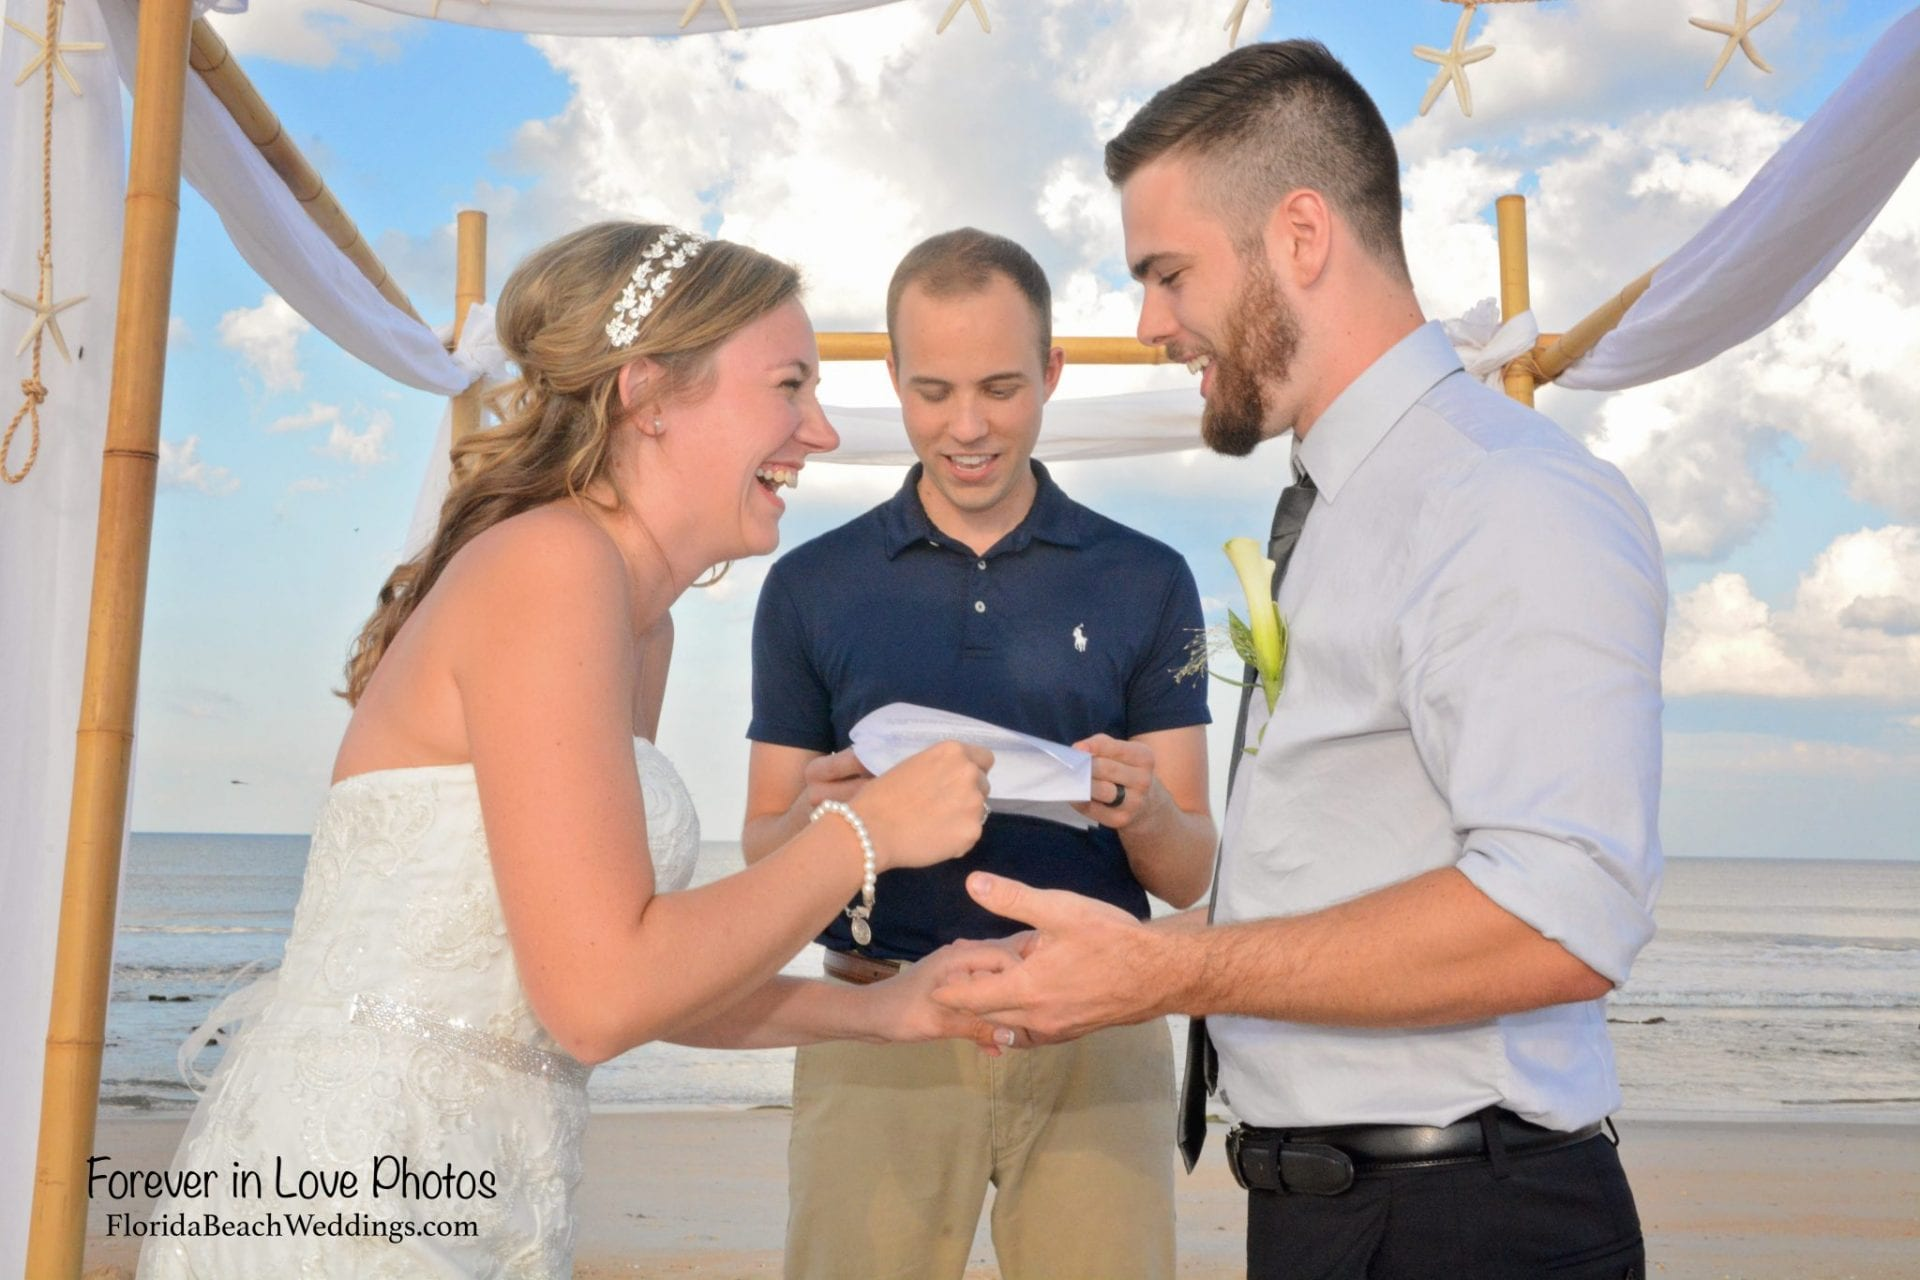 Couple saying vows at beach wedding St. Augustine